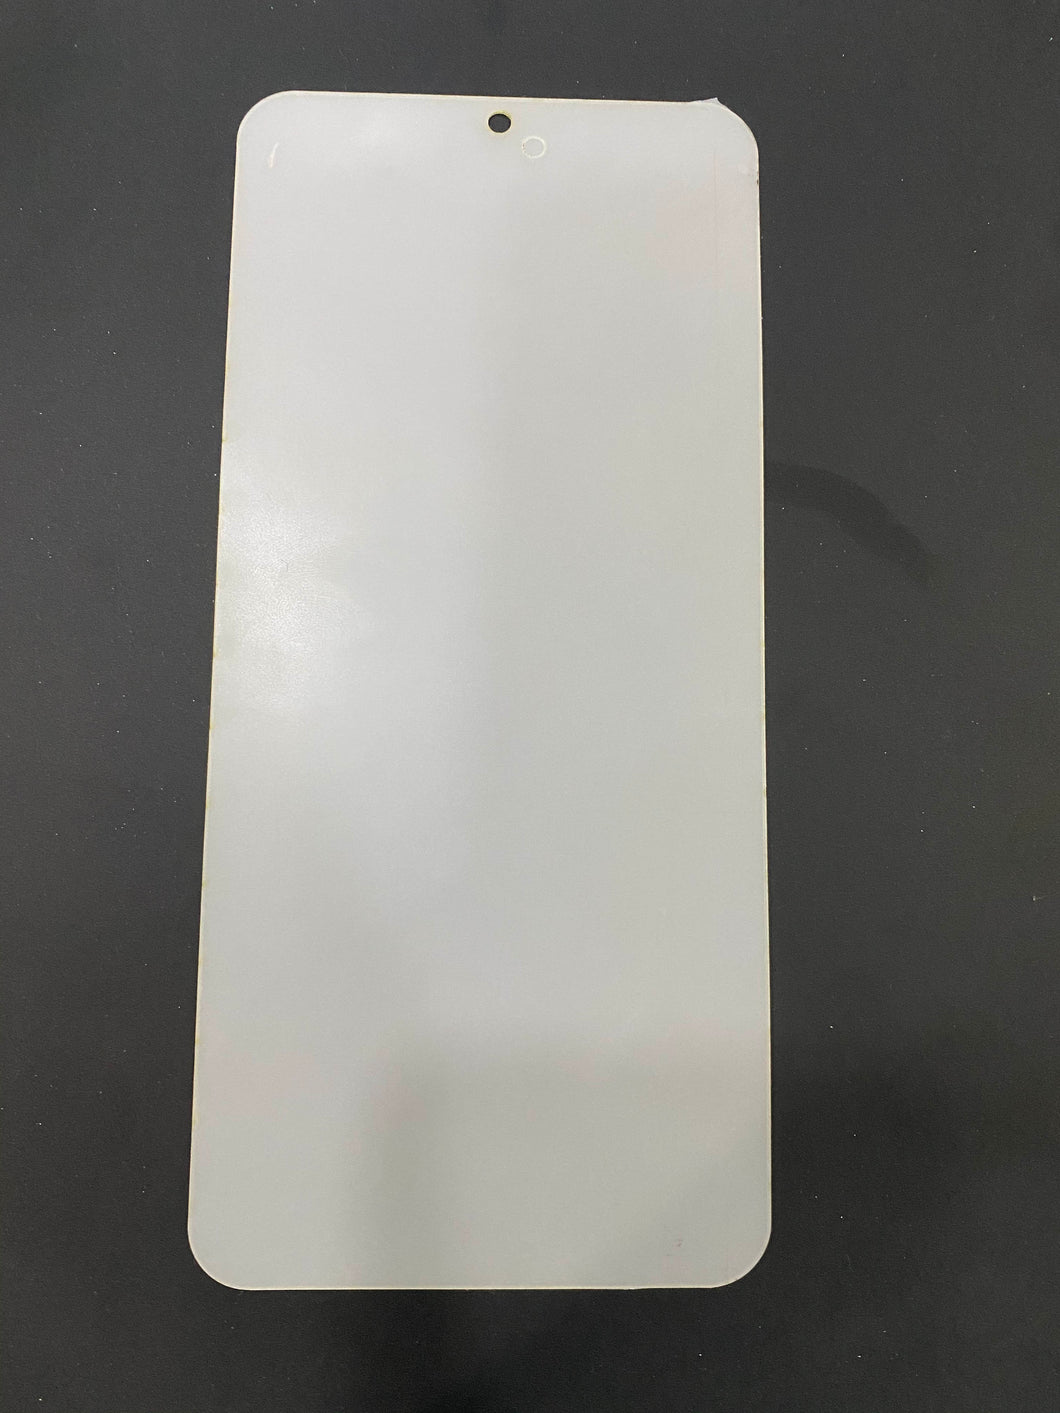 SCREEN PROTECTOR (KOREA TPU)